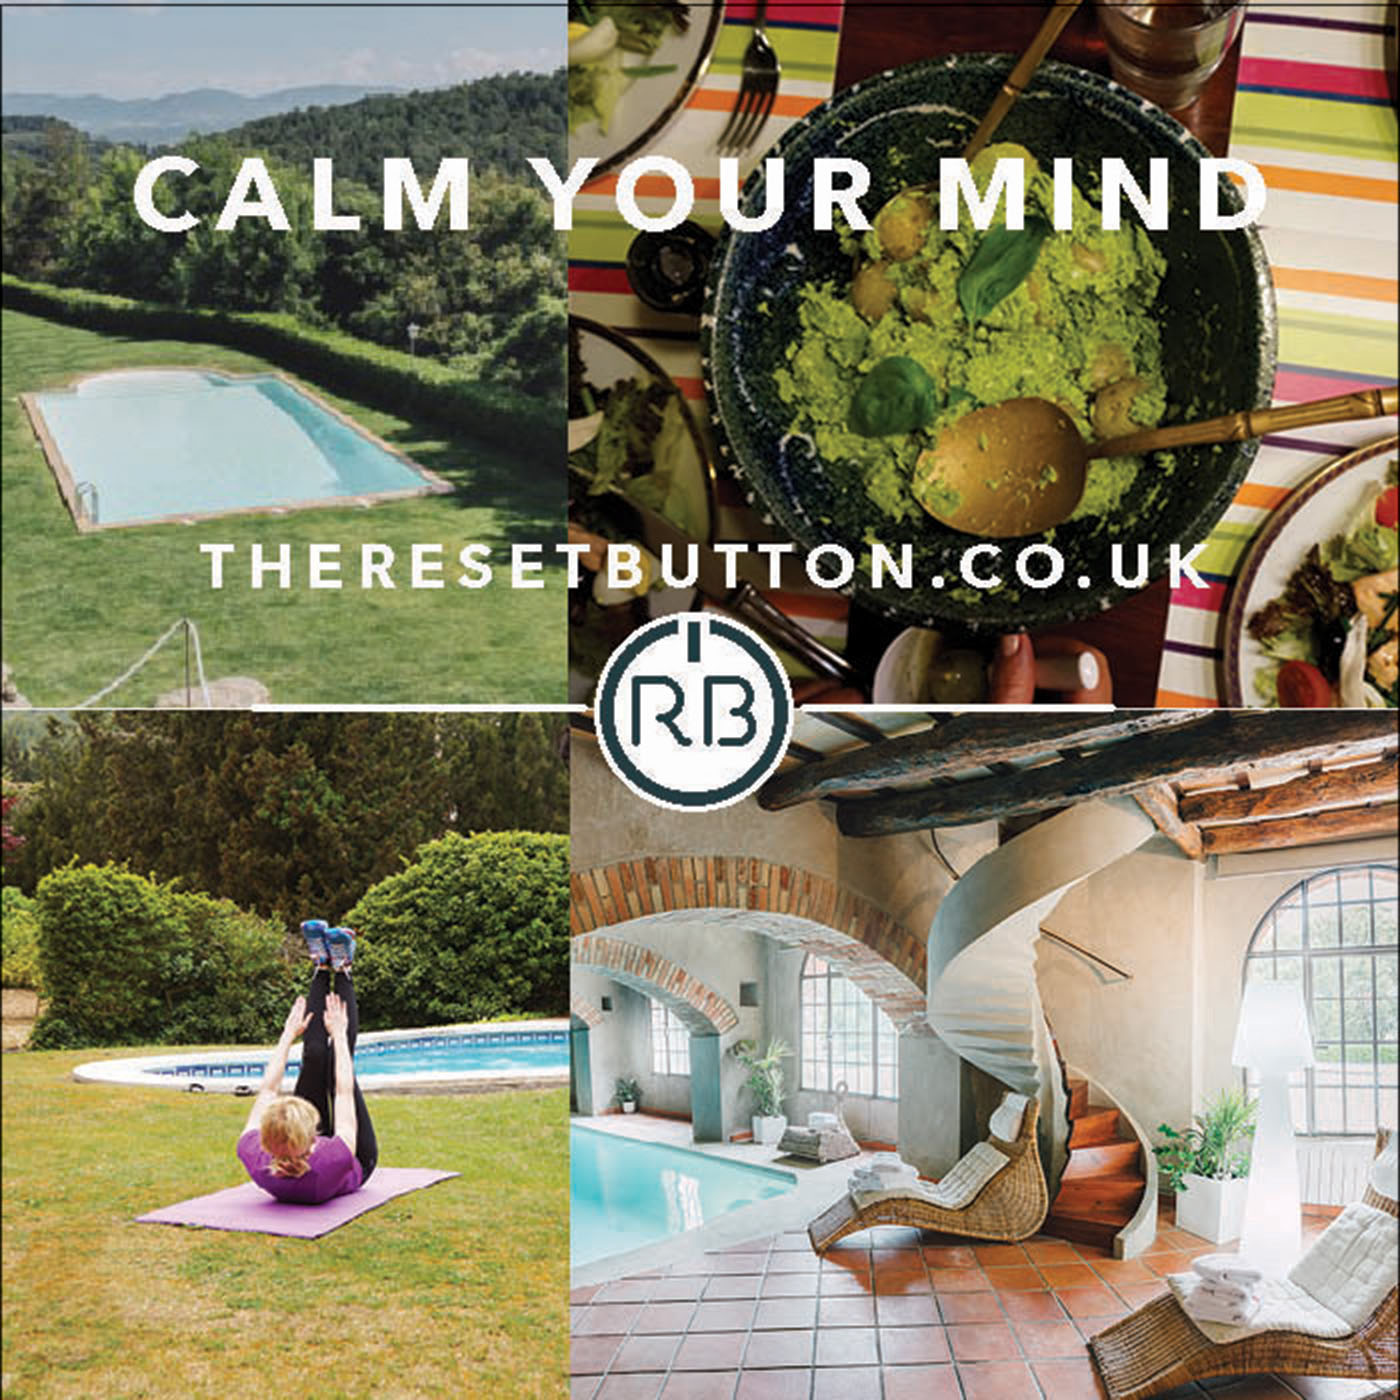 Calm Your Mind Mini Course - Mindfulness and health retreat